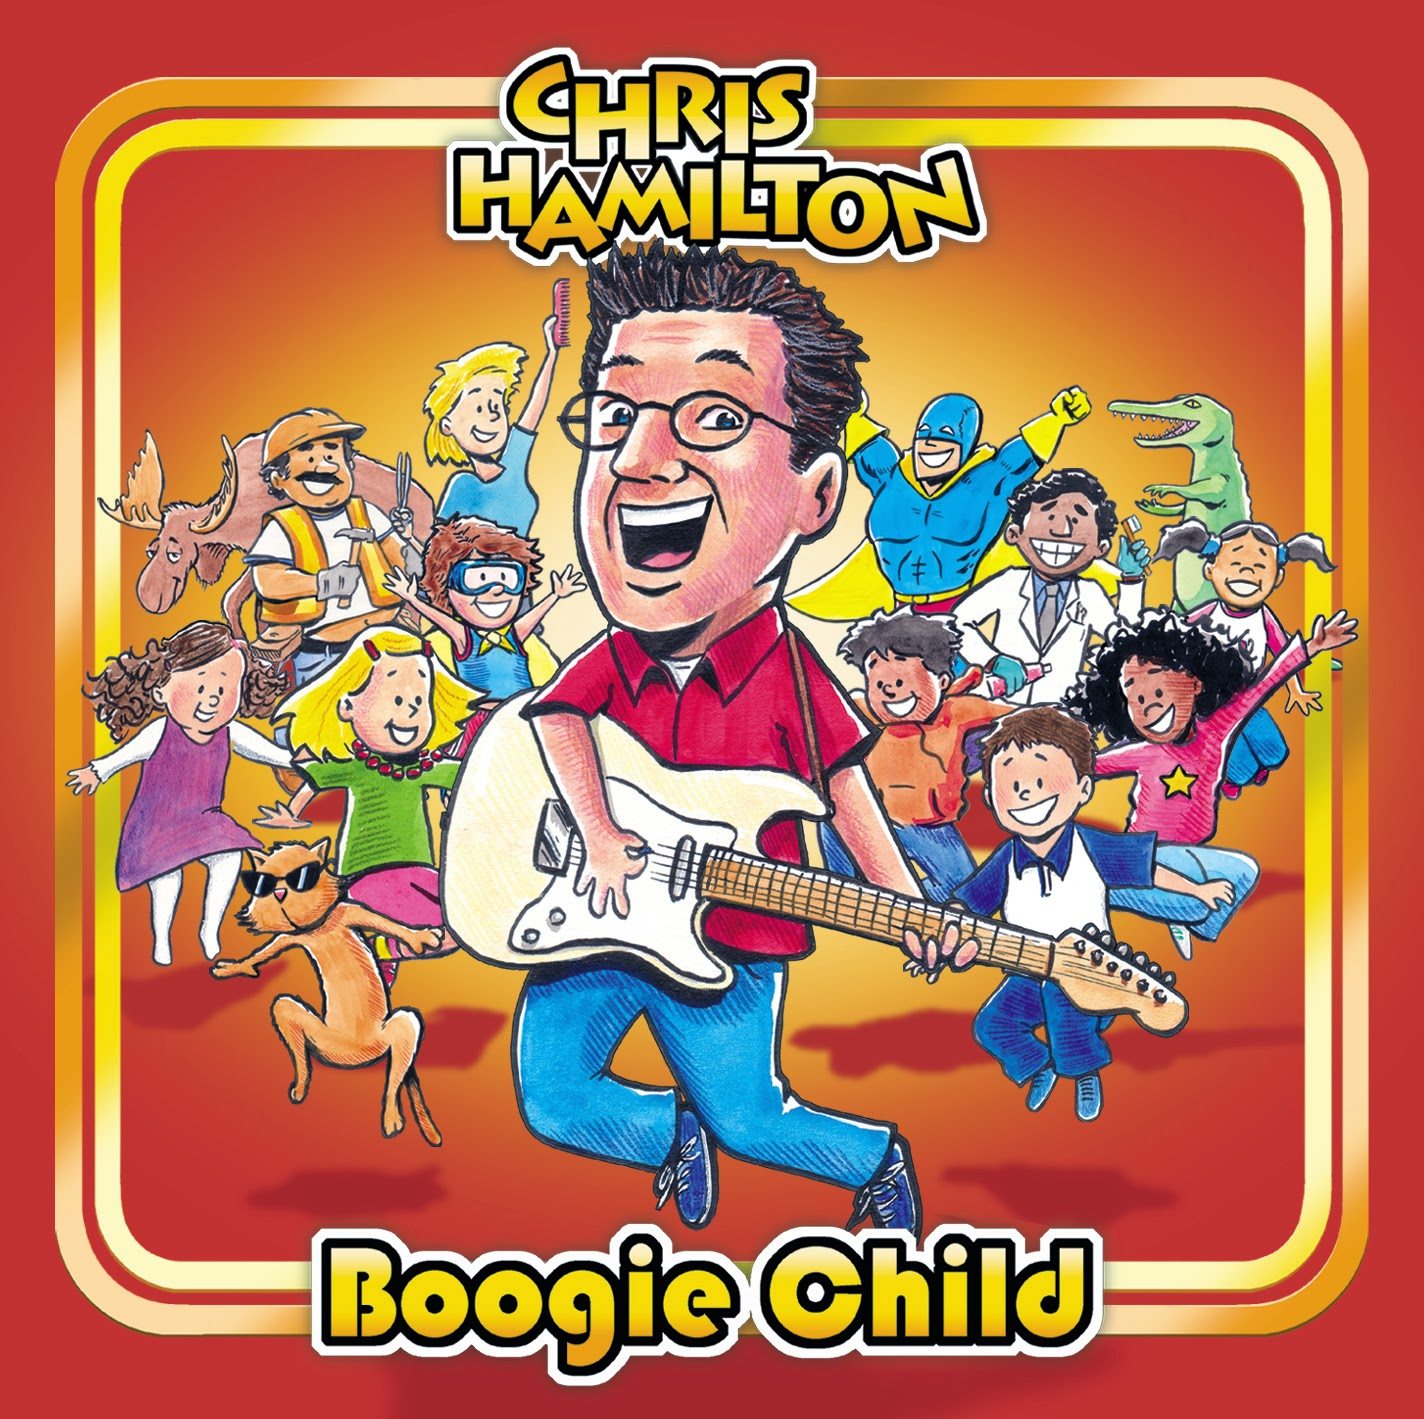 Chris Hamilton Boogie Child